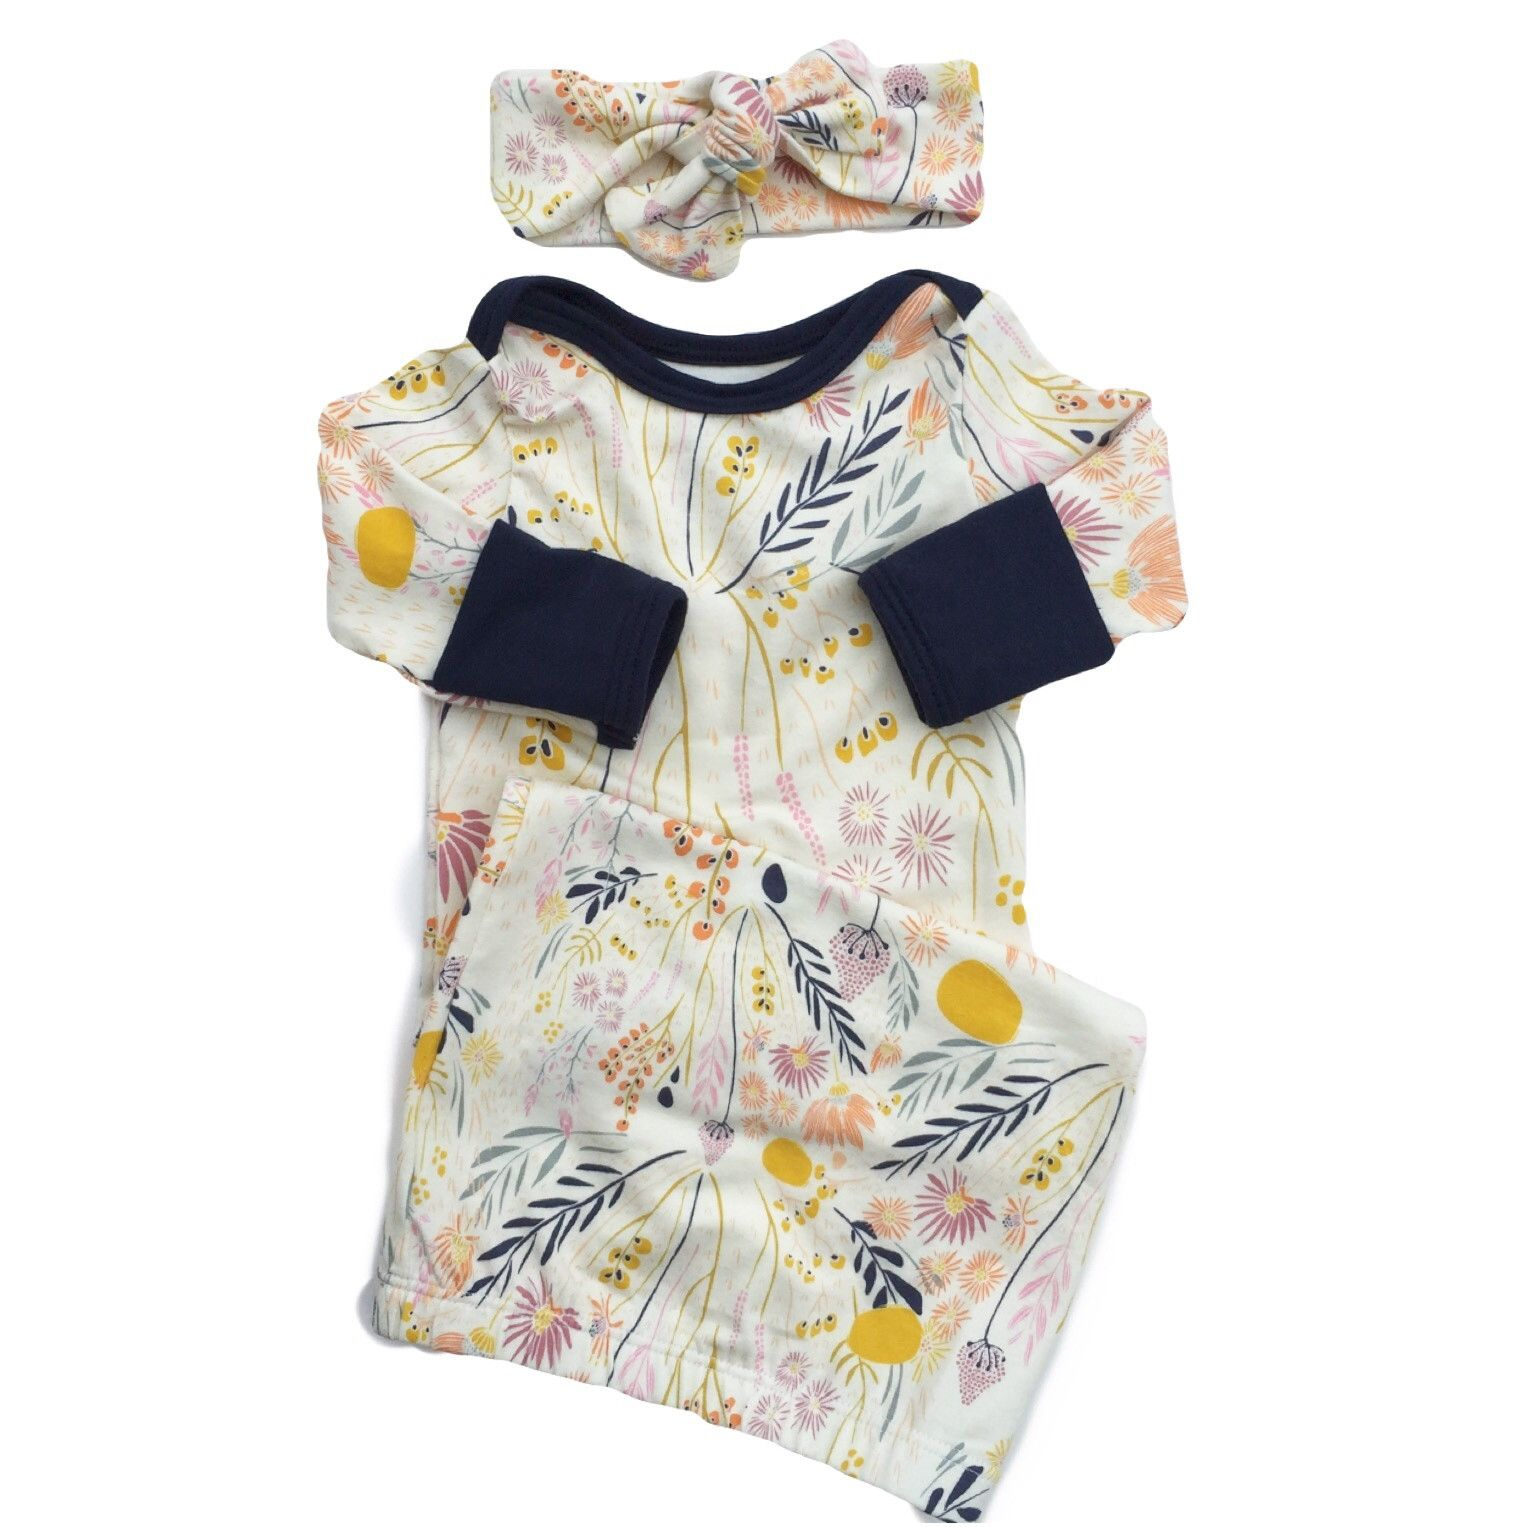 Wispy Wildflowers Layette Gown with Navy Accents | Layette, Baby ...